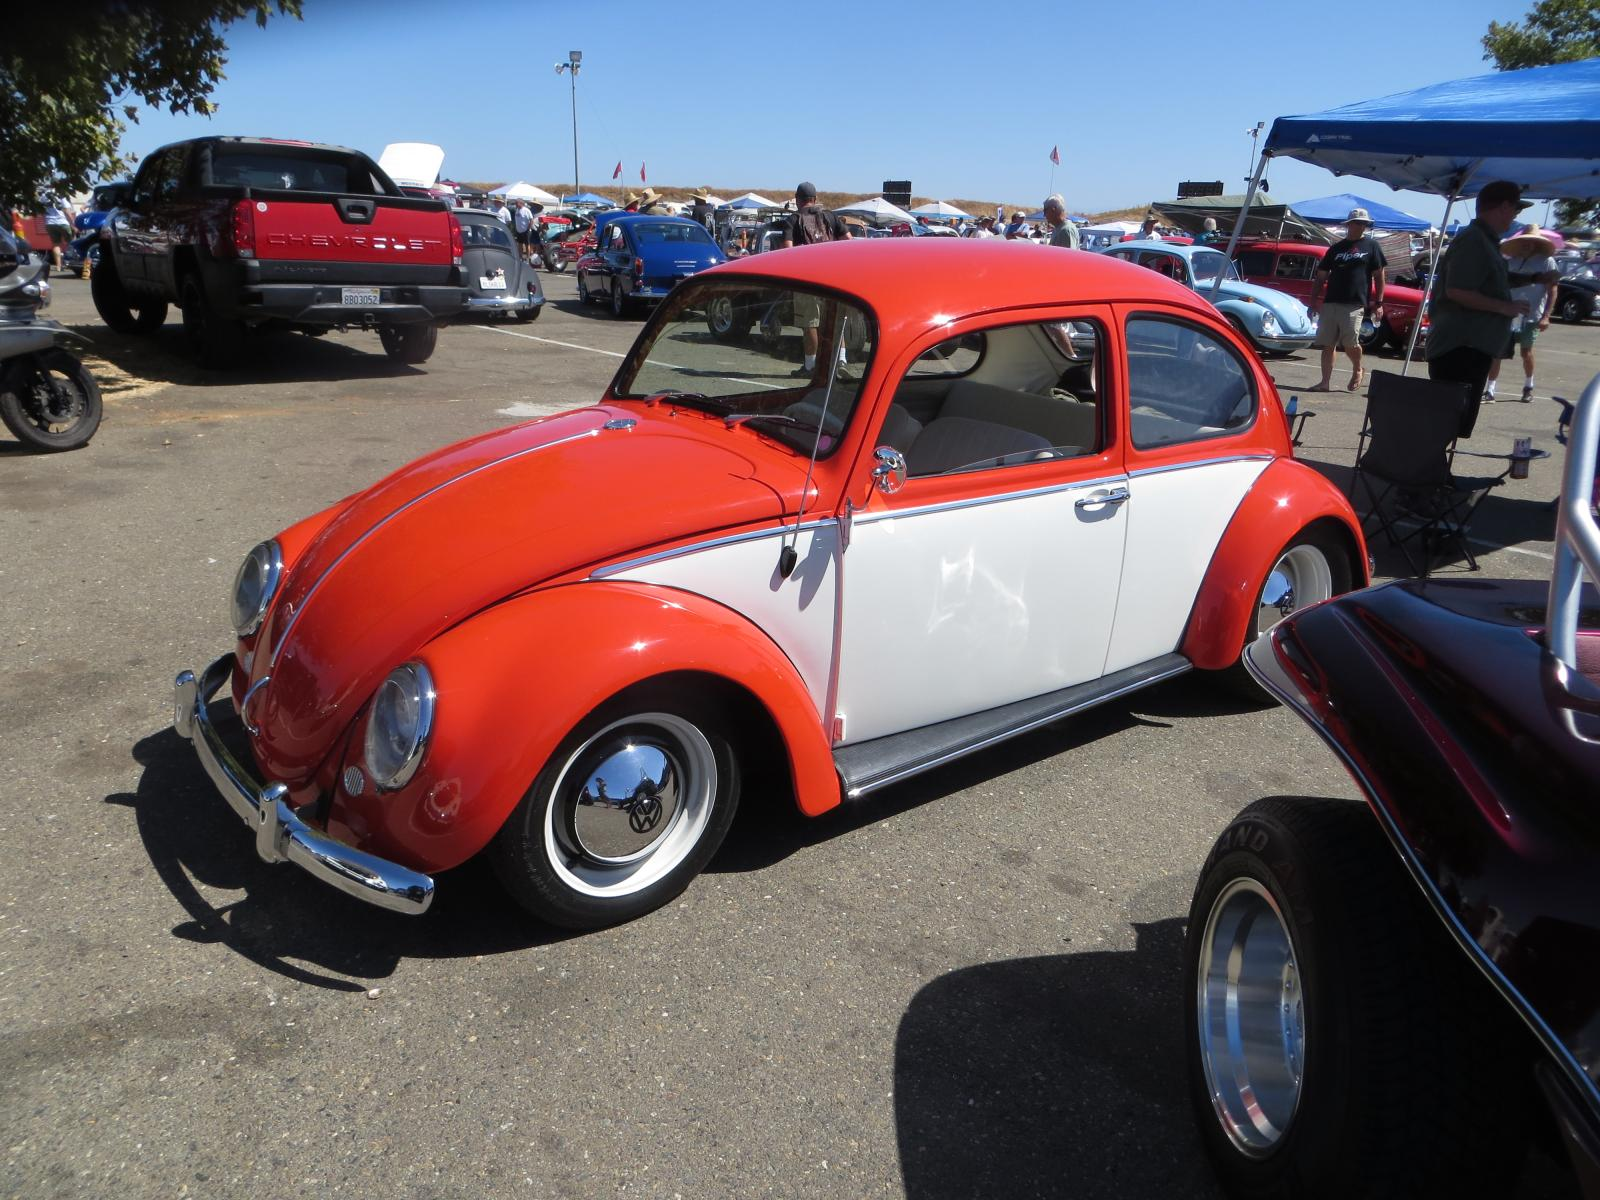 BUGS at Bugorama #84, Sun. Sept 1st, 2019 in Sacramento